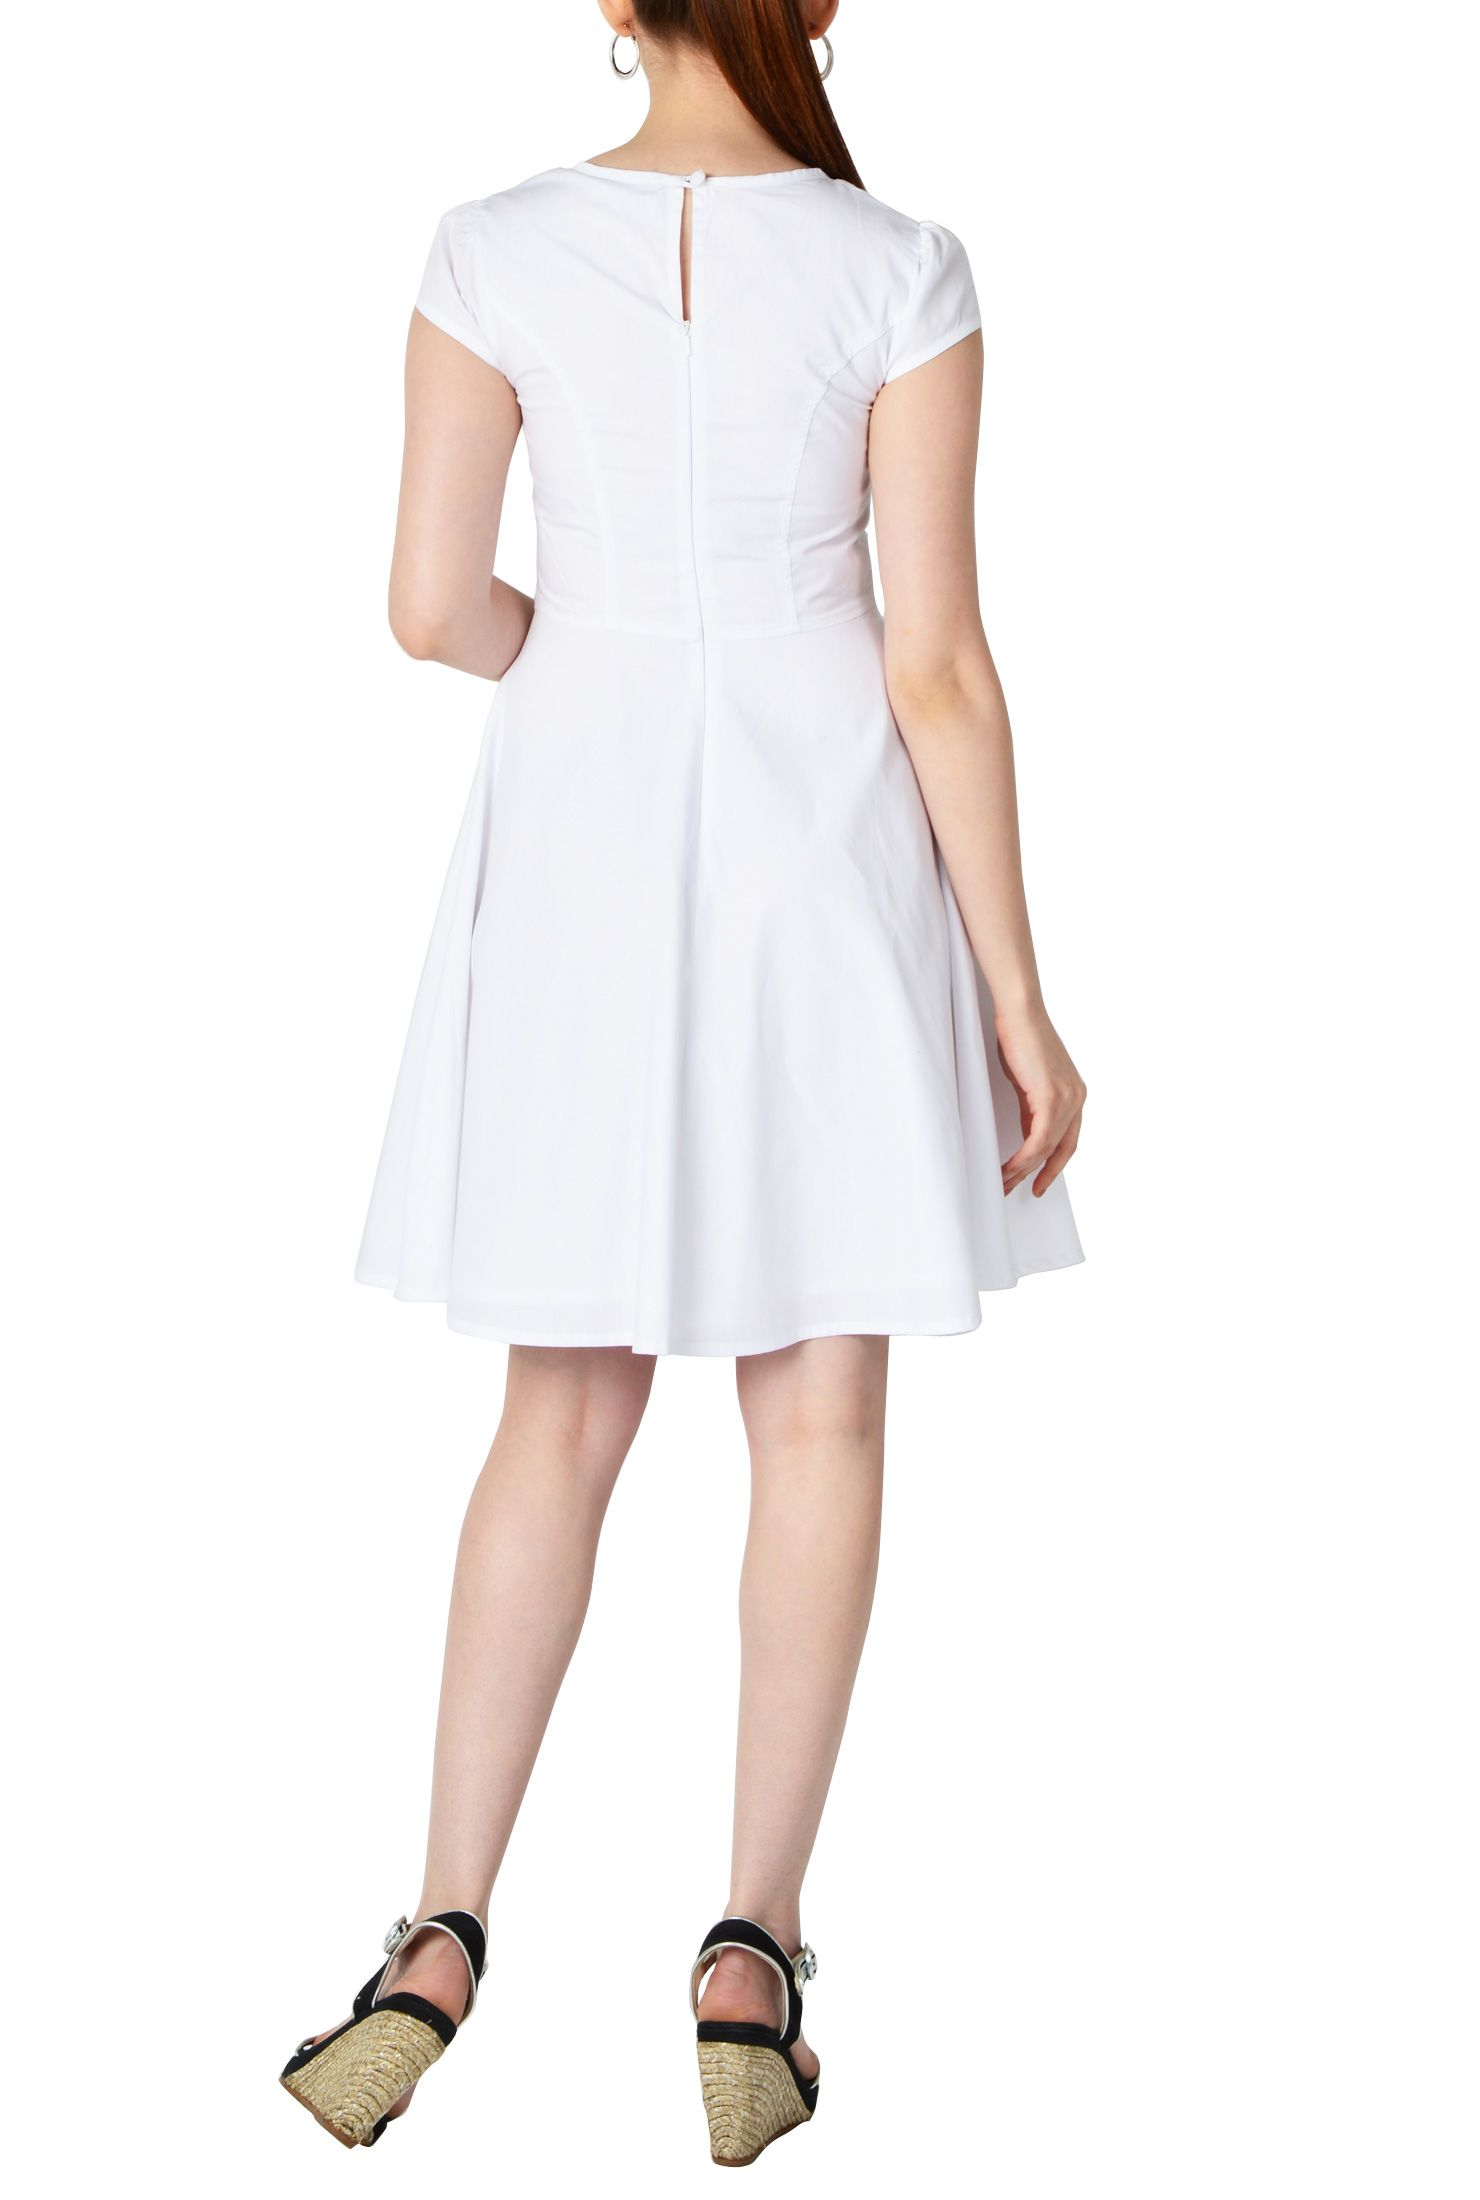 Morgan Dresses Cotton Poplin Cap Sleeve Women S Designer Dress Stylish